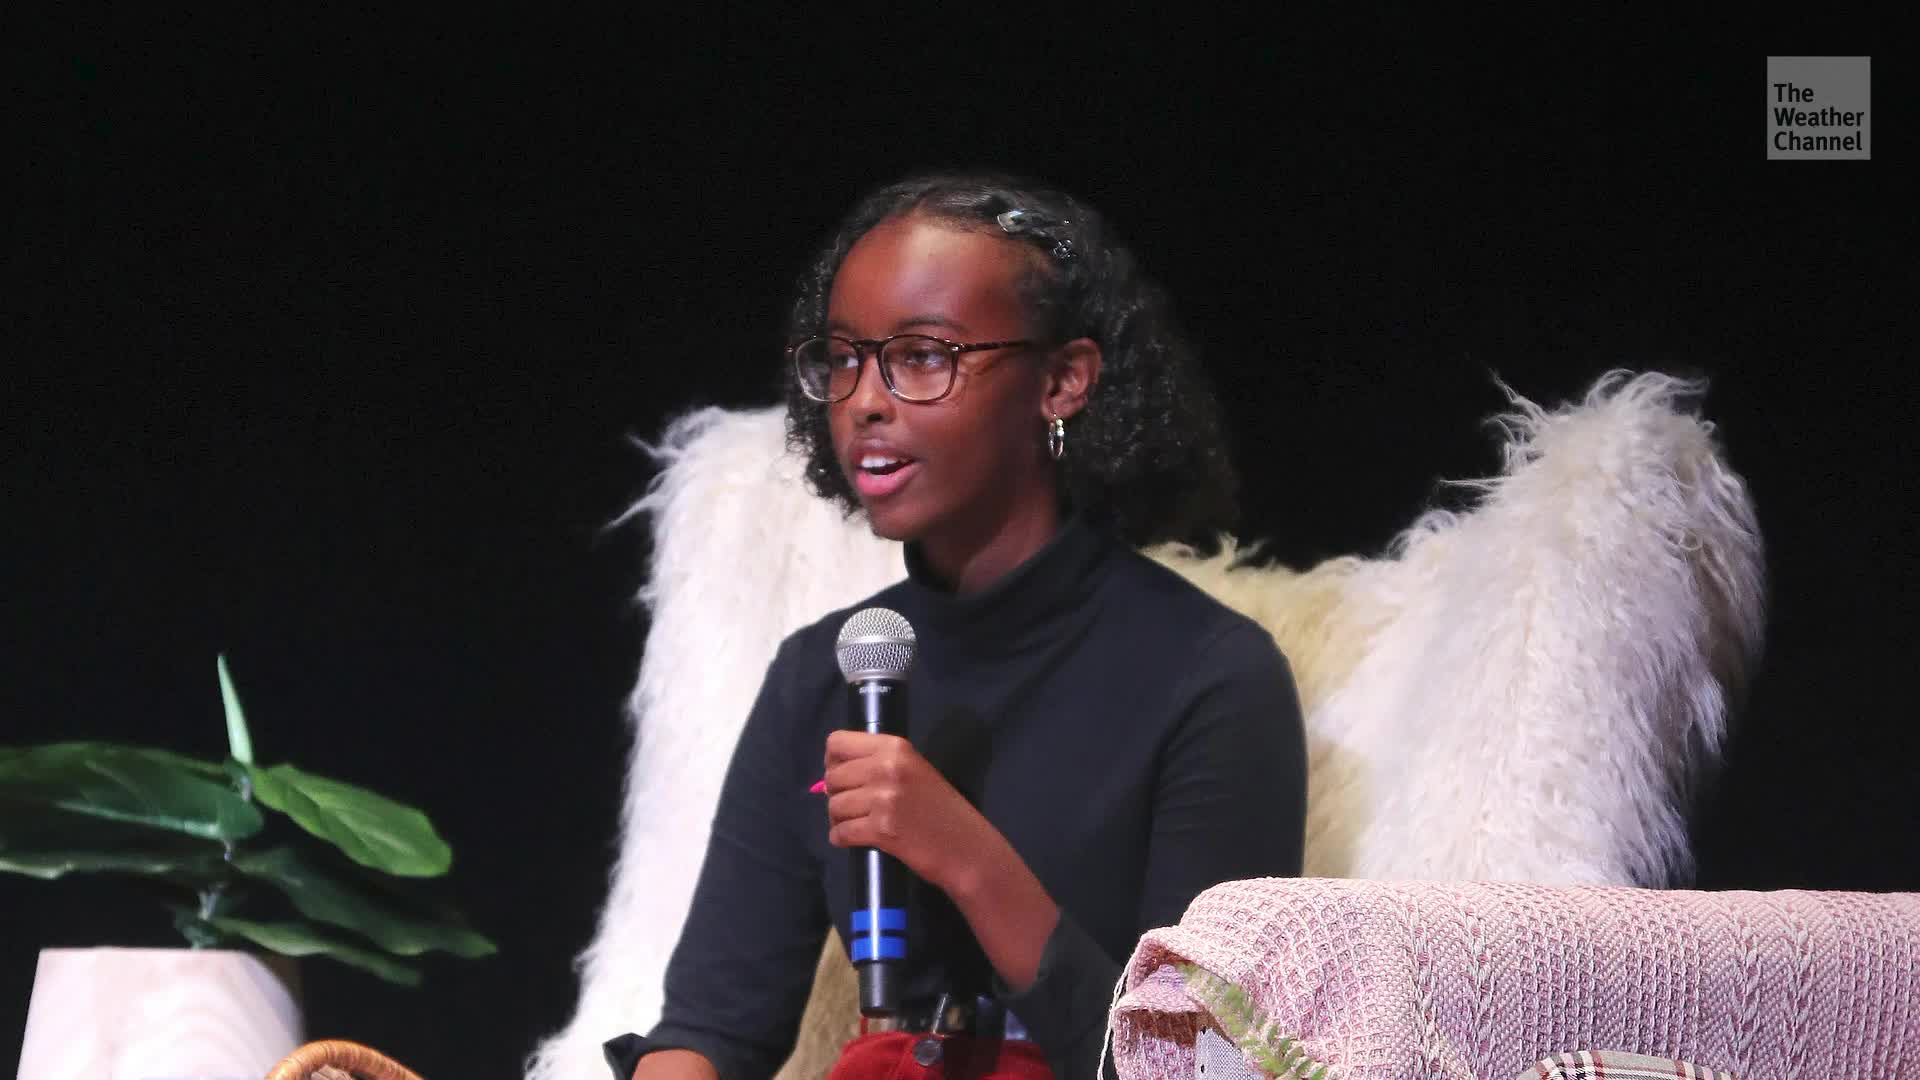 The sixteen year old daughter of Congresswoman Ilhan Omar has already mobilized millions for climate action.